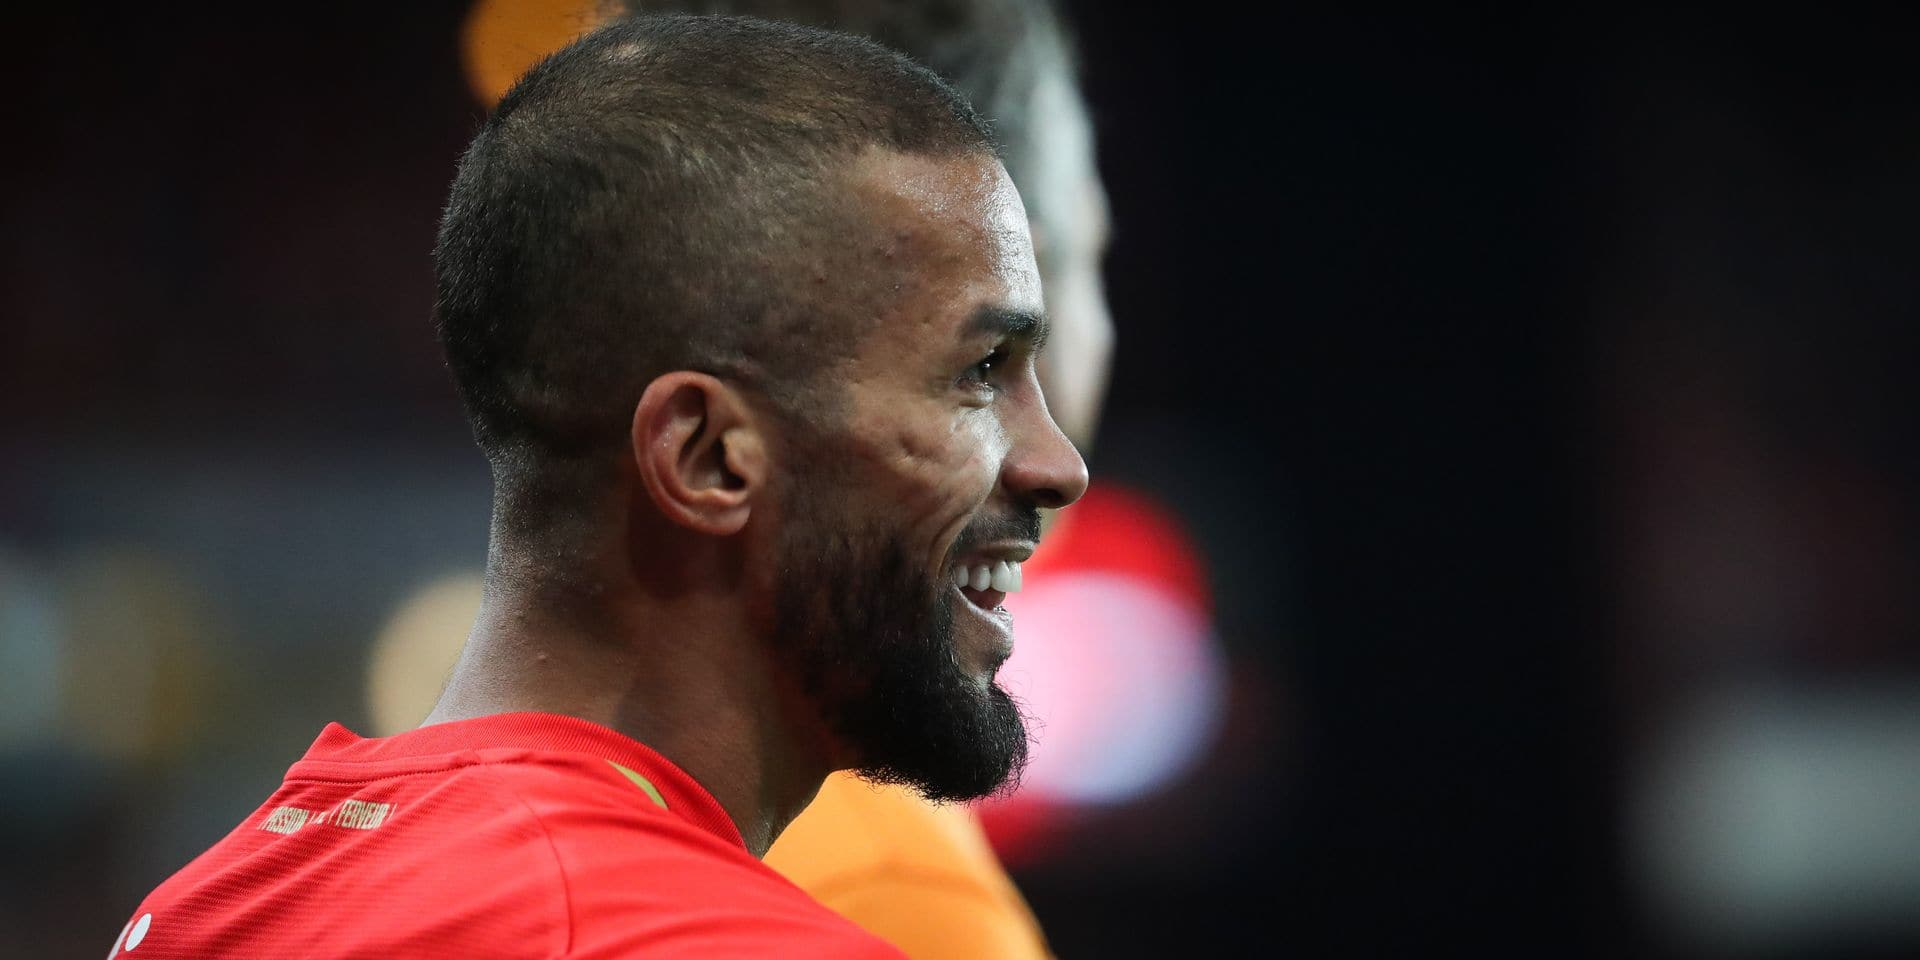 Standard's Mehdi Carcela pictured during the Jupiler Pro League match between Standard de Liege and Club Brugge, in Liege, Sunday 07 October 2018, on the tenth day of the Jupiler Pro League, the Belgian soccer championship season 2018-2019. BELGA PHOTO VIRGINIE LEFOUR